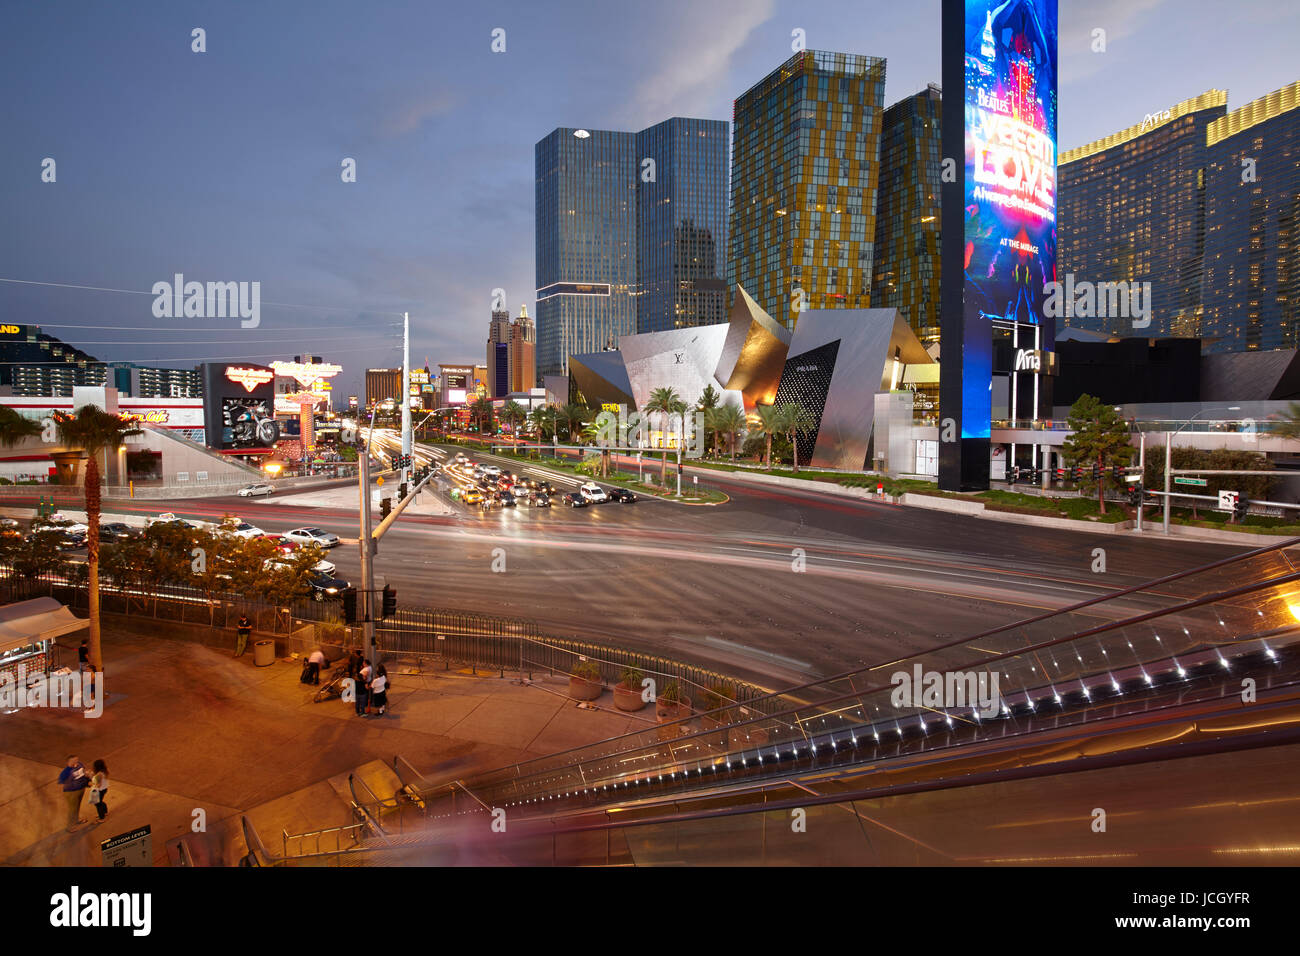 Las Vegas Boulevard at night, Nevada, United States - Stock Image